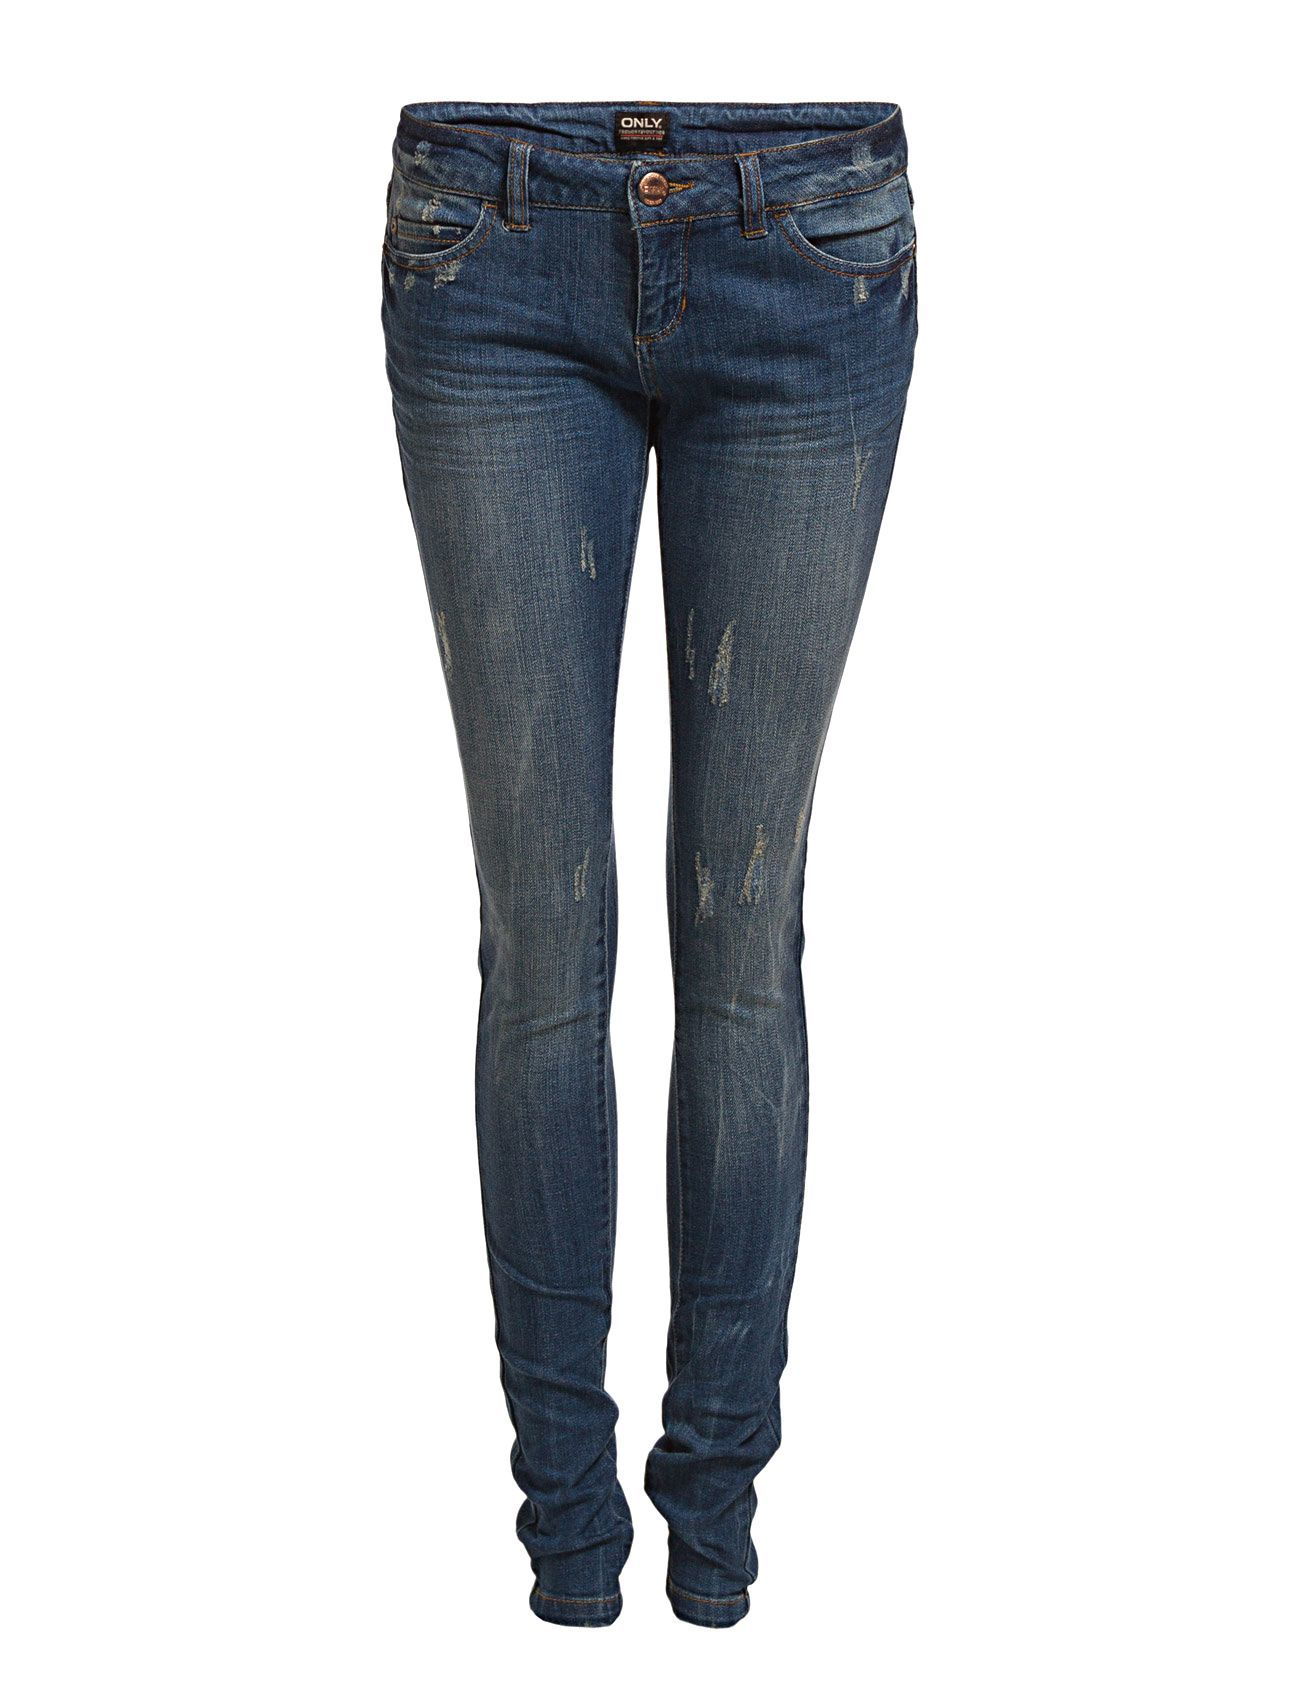 Skinny Low Coral Destroyed Jeans Bj1751